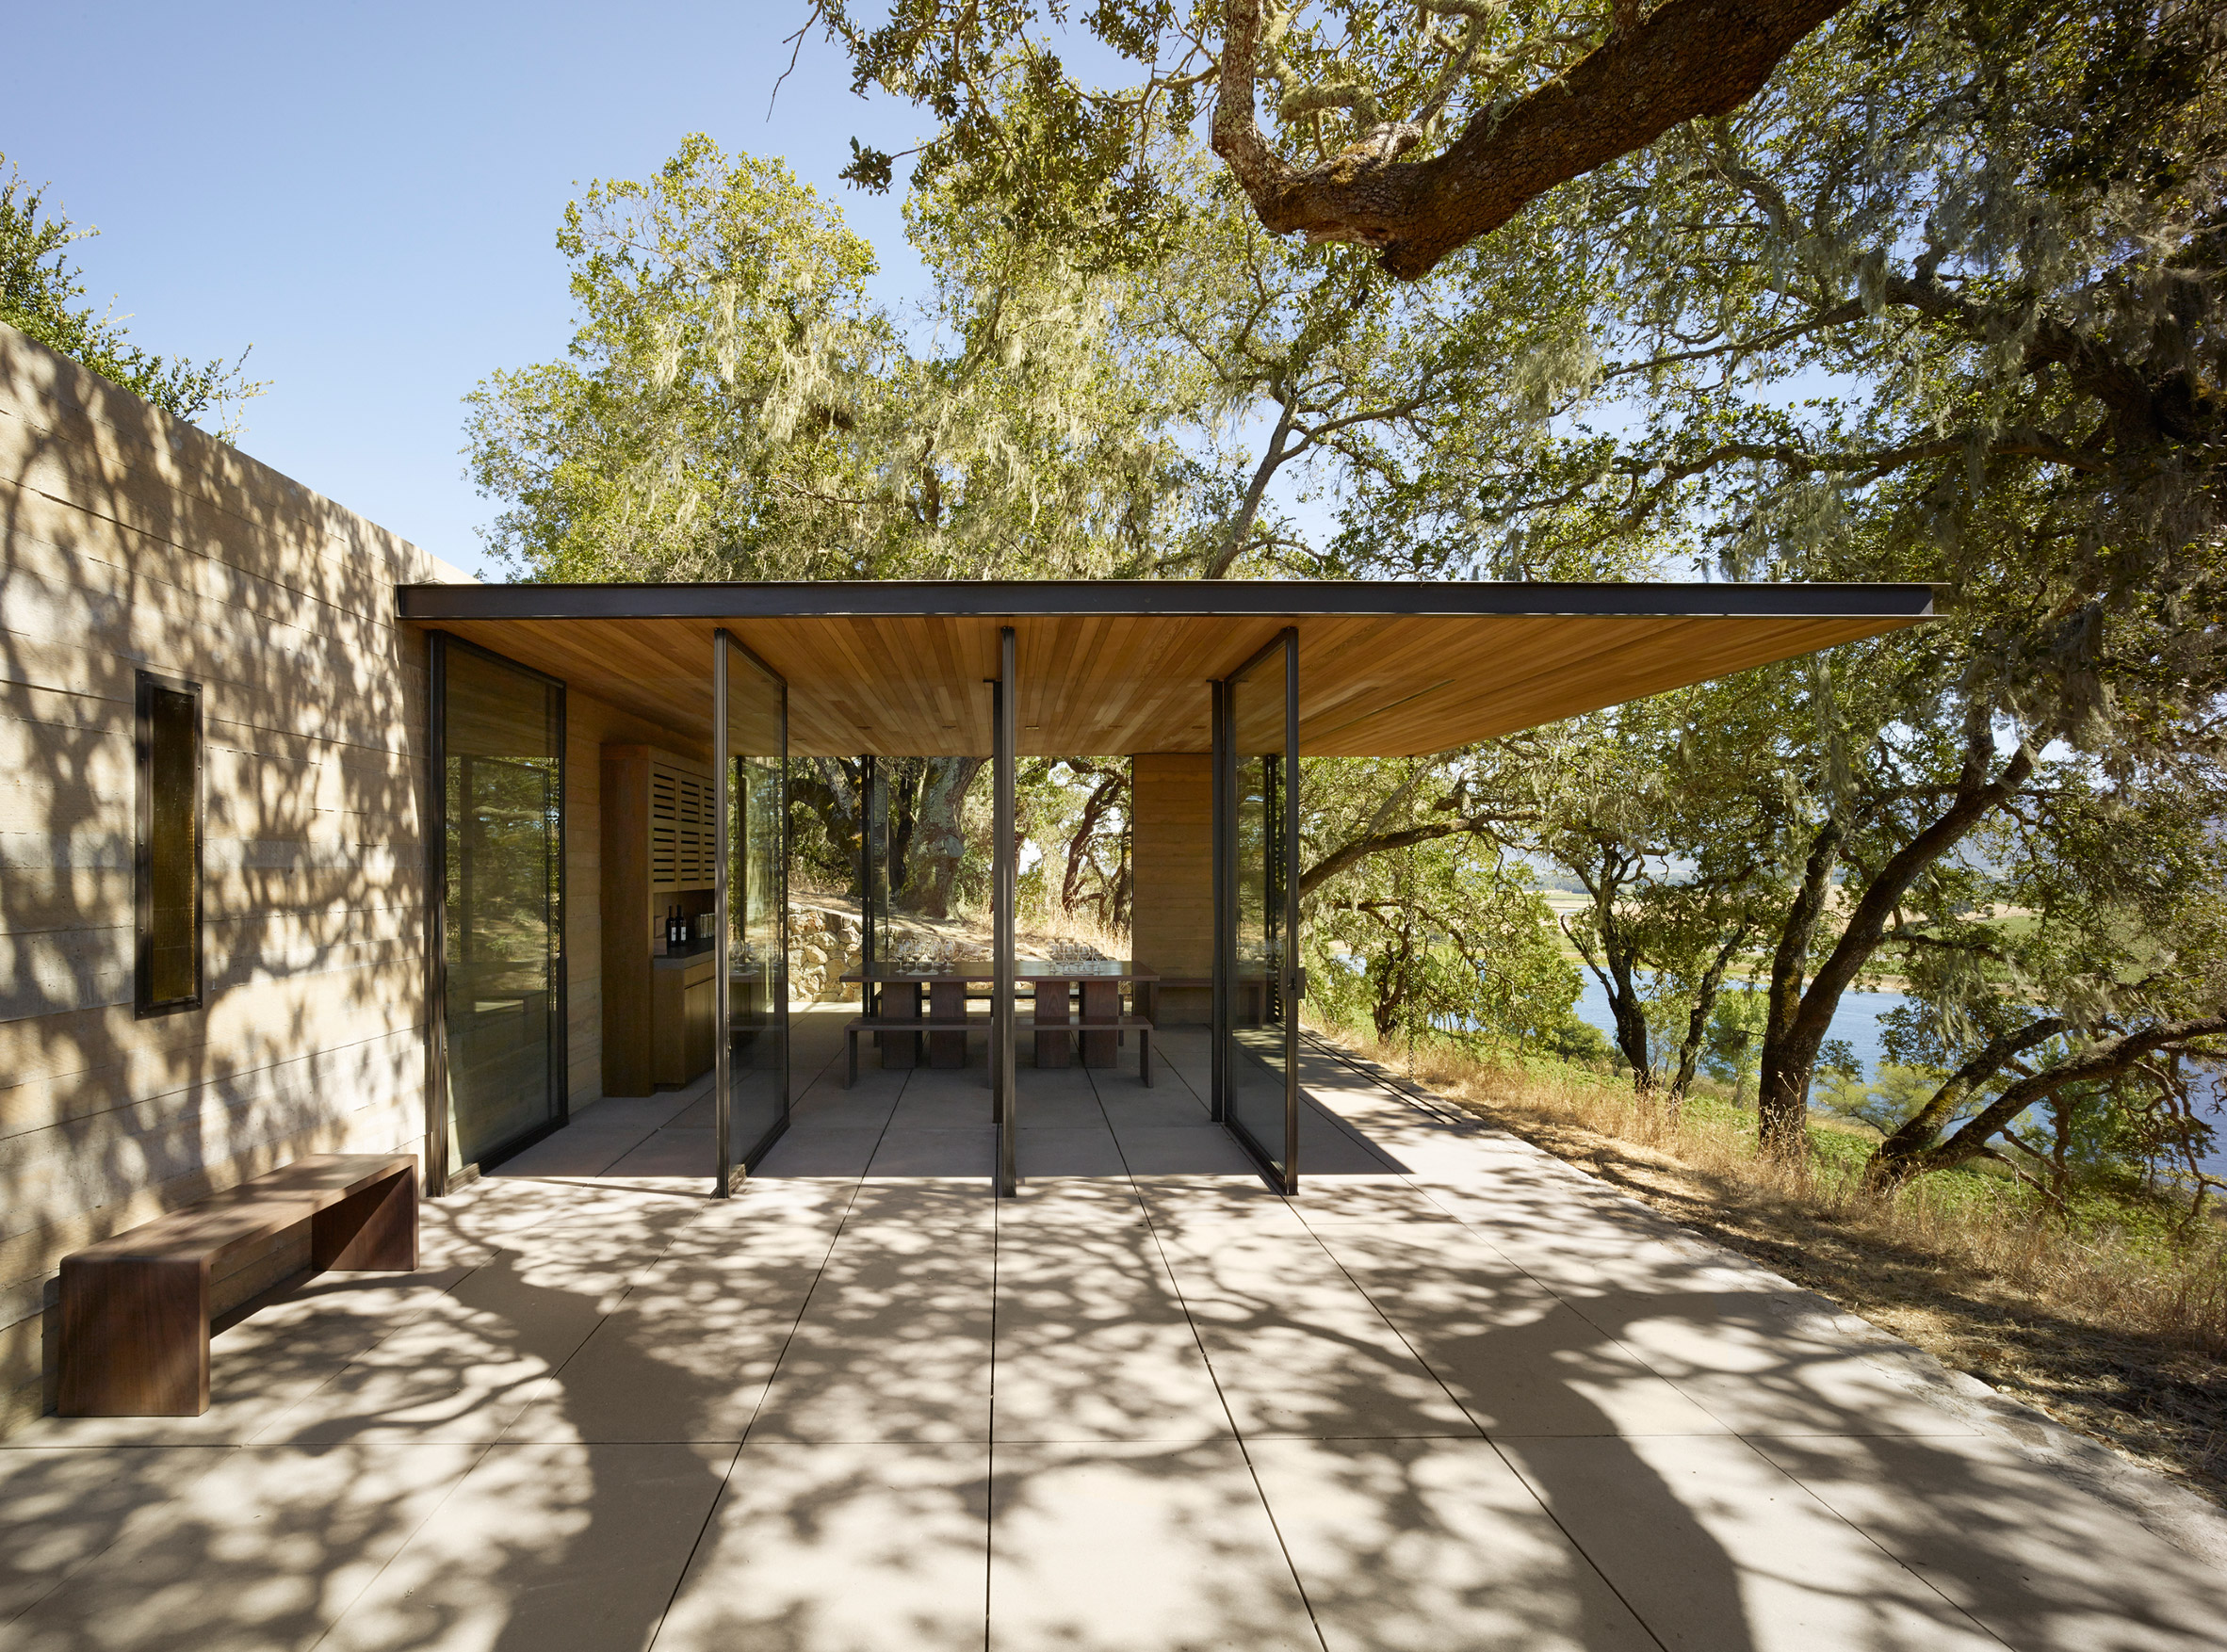 Wine-tasting pavilions by Walker Warner perch on ridge overlooking Napa Valley